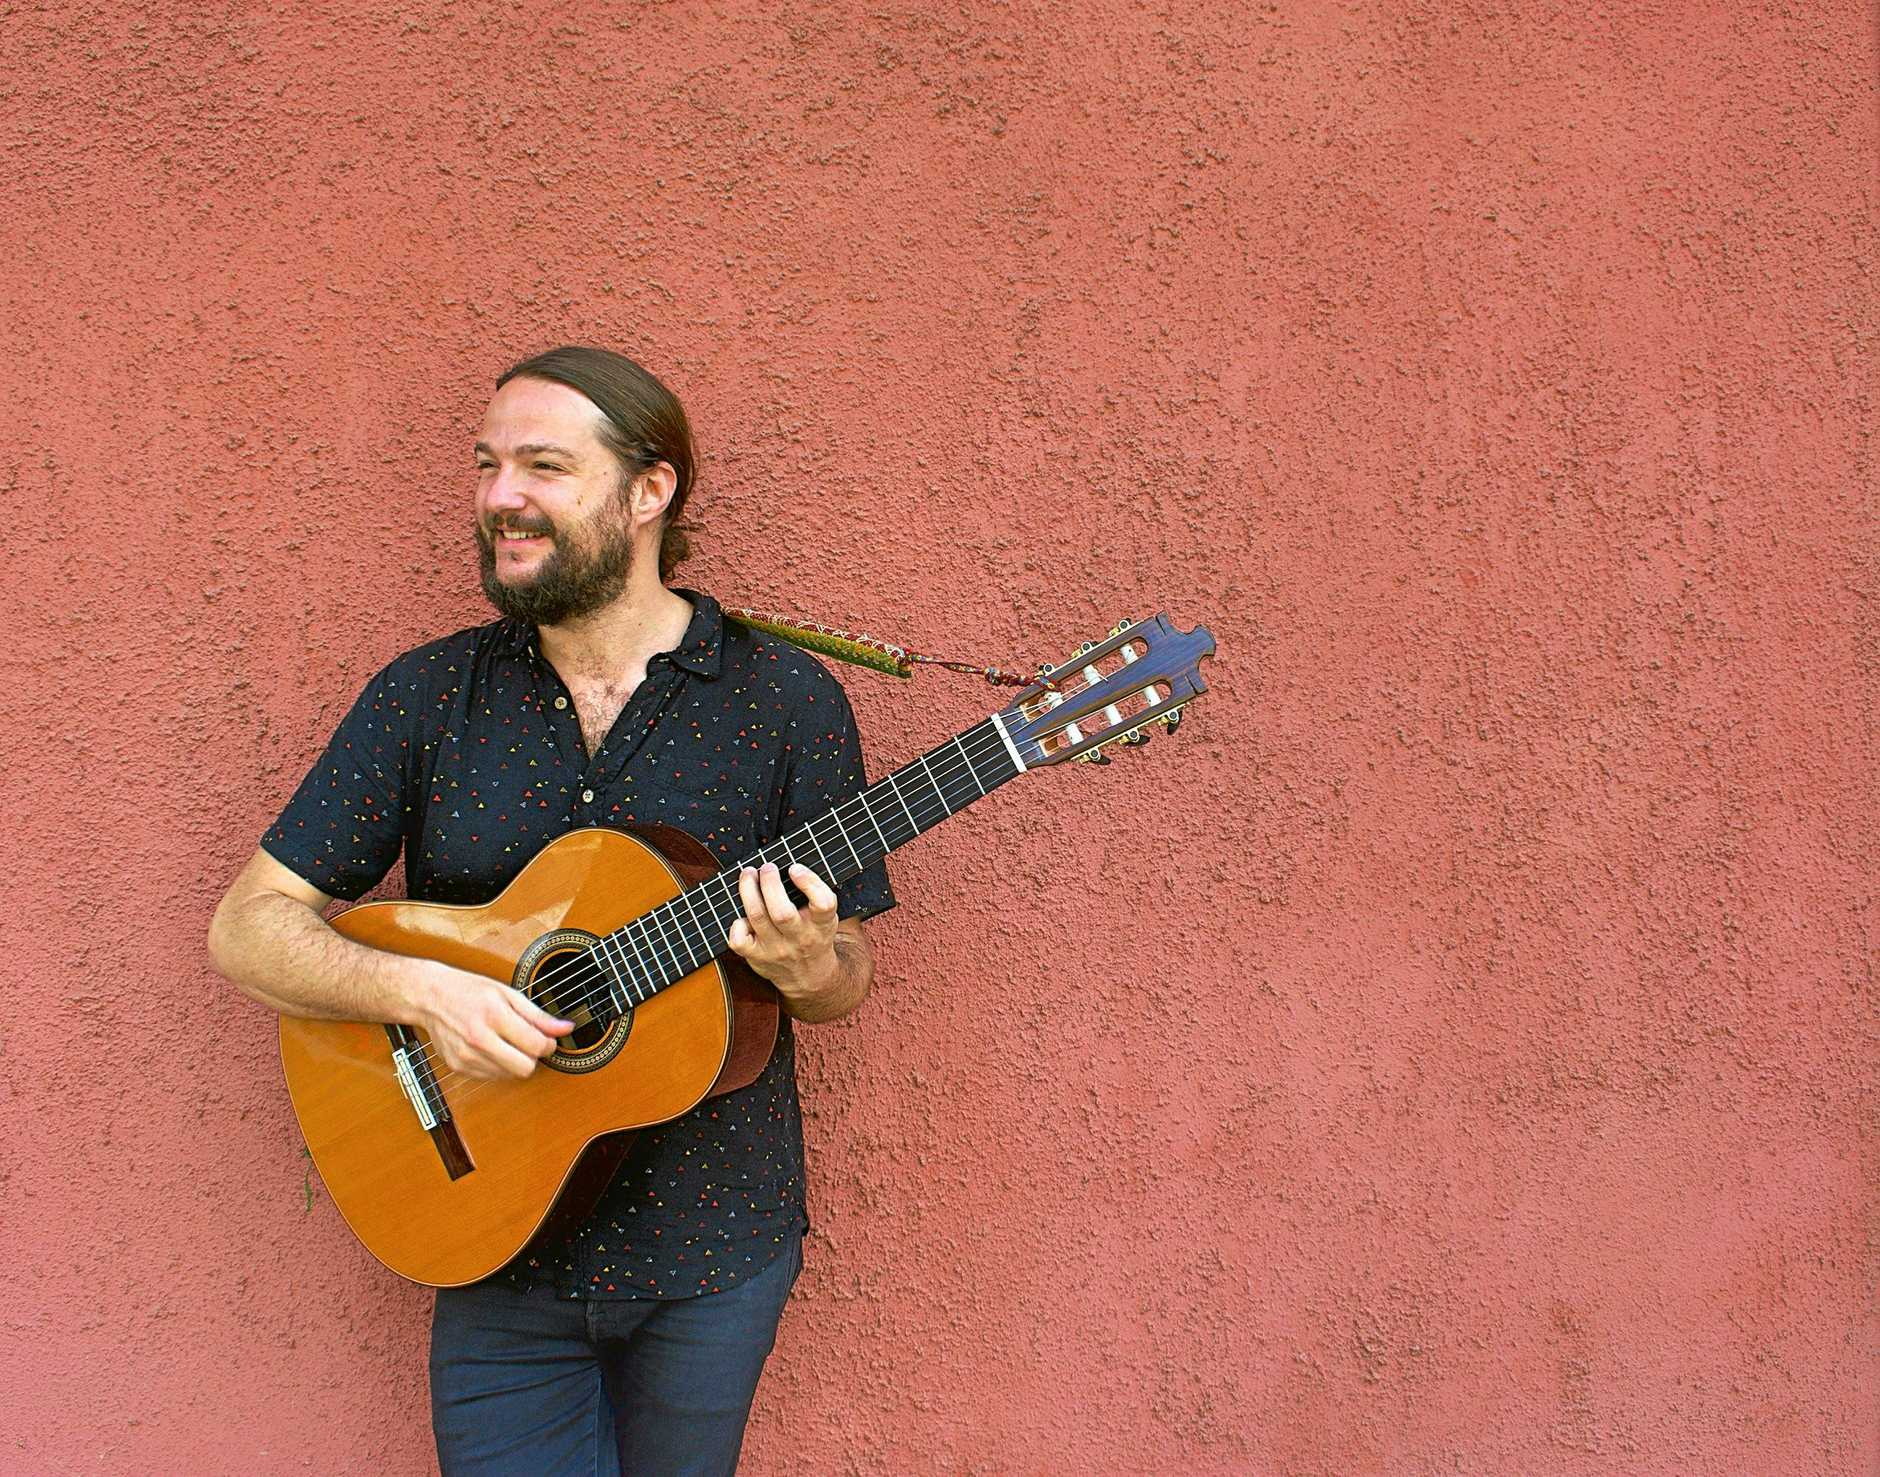 A MAN AND A GUITAR: Chilean musician Nano Stern is preparing to perform at Mullum Music Festival later this month.